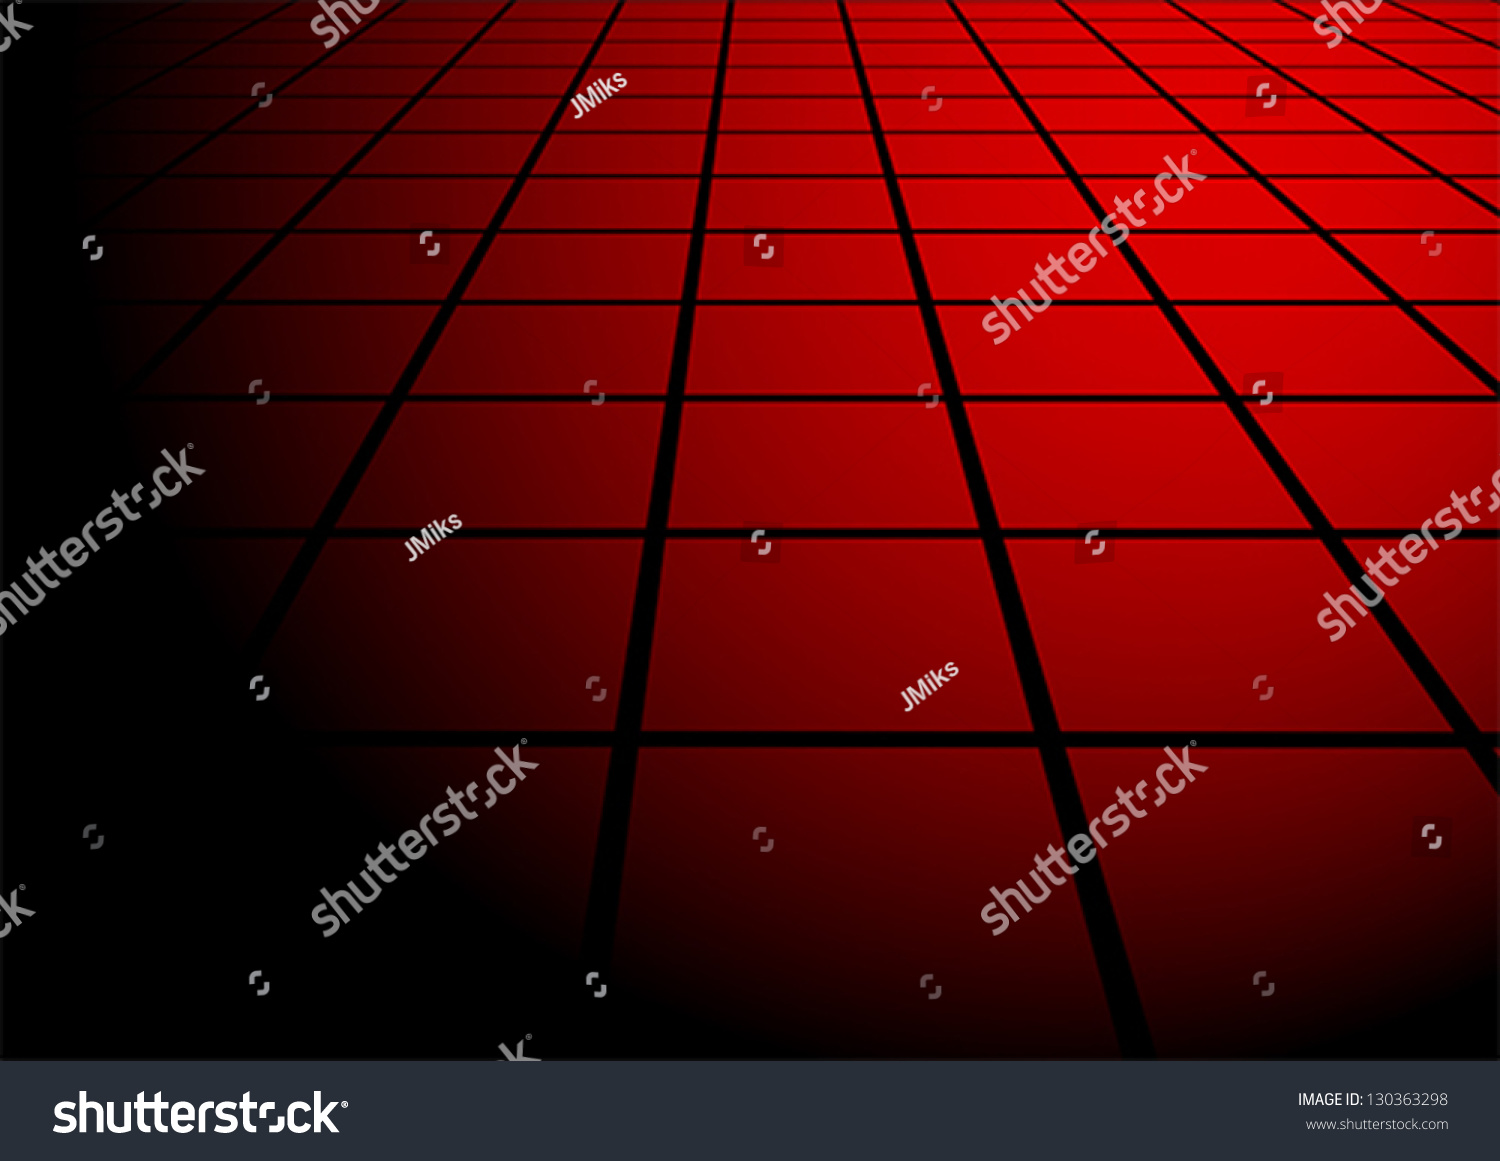 Abstract red floor tiles on black stock vector 130363298 abstract red floor tiles on black background dailygadgetfo Choice Image